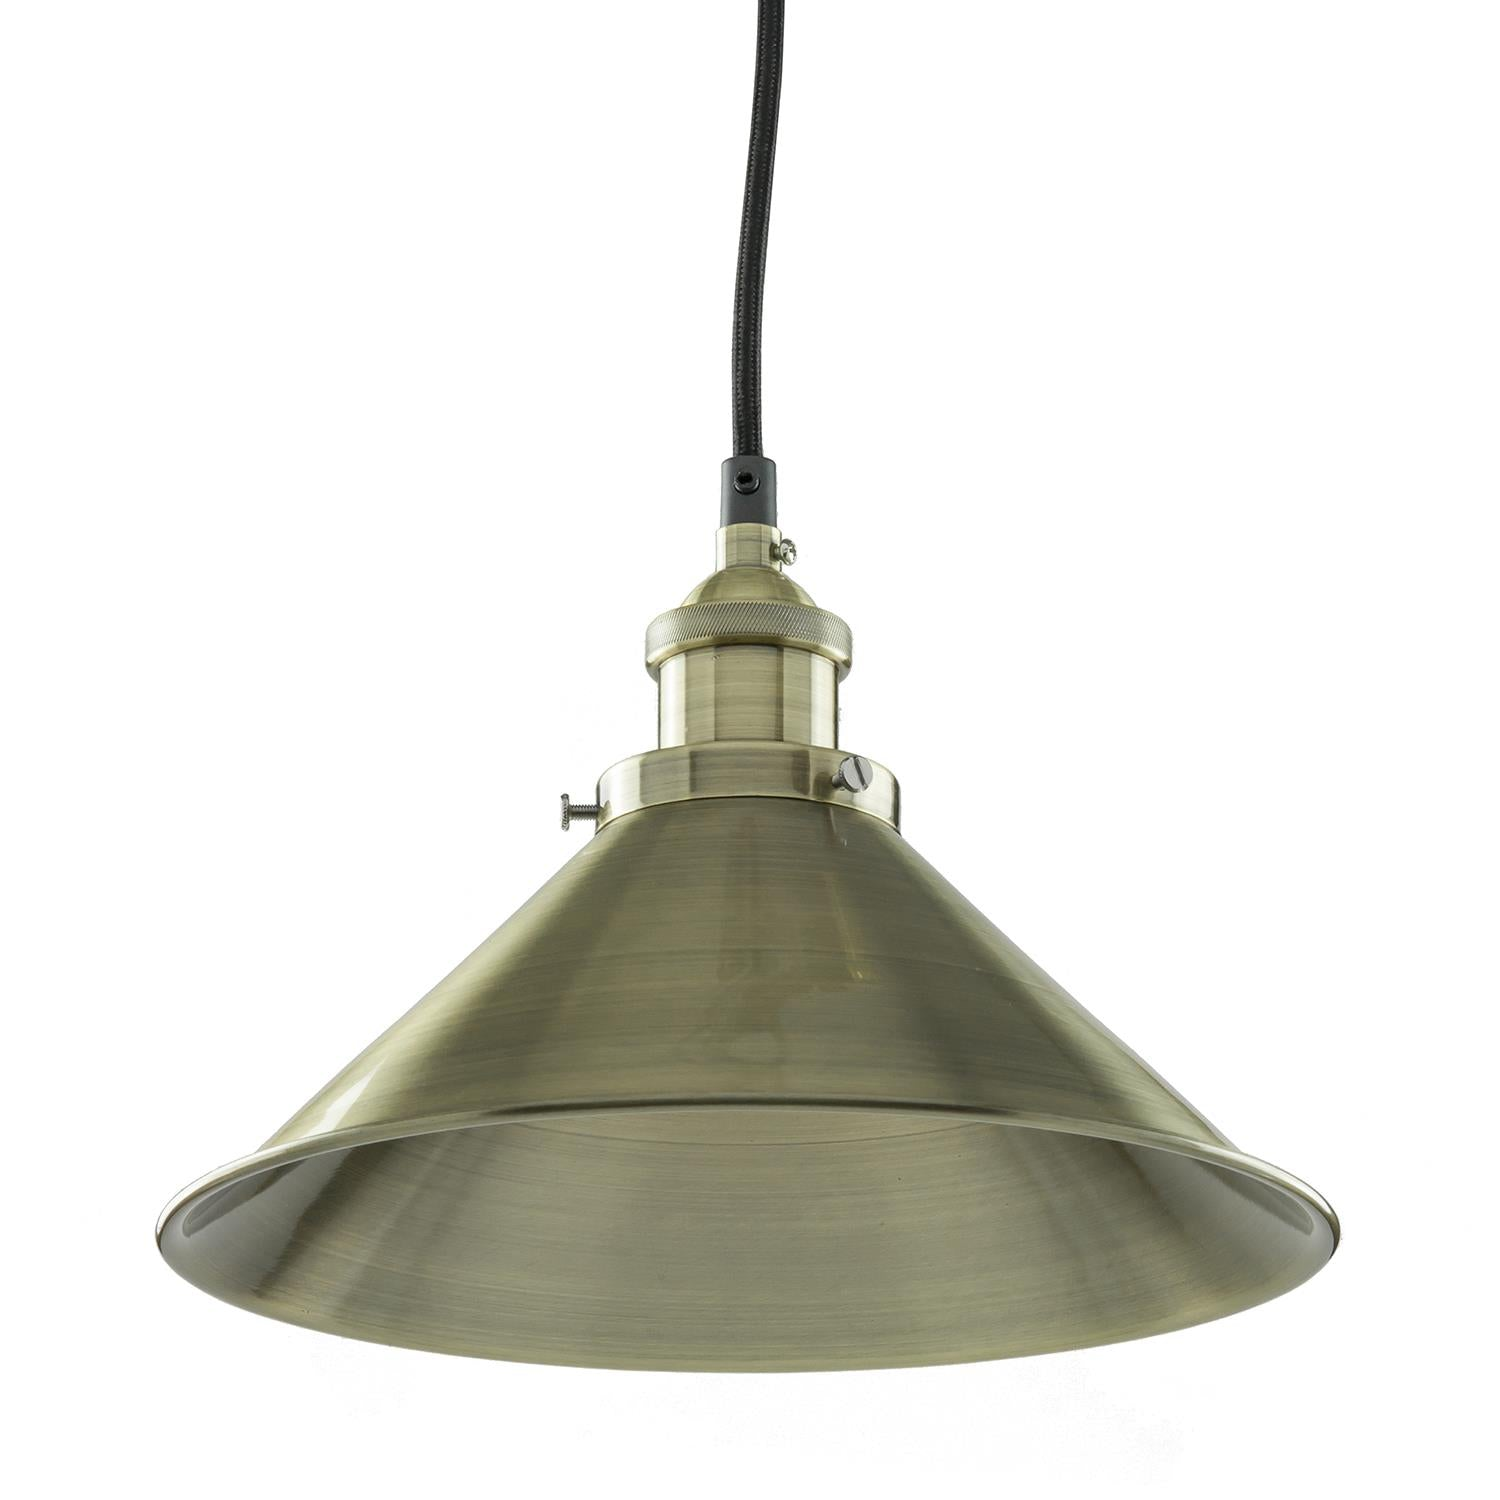 "Sunlite 07008-SU 10"" Canopy Pendant Fixture in Antique Bronze Finish"